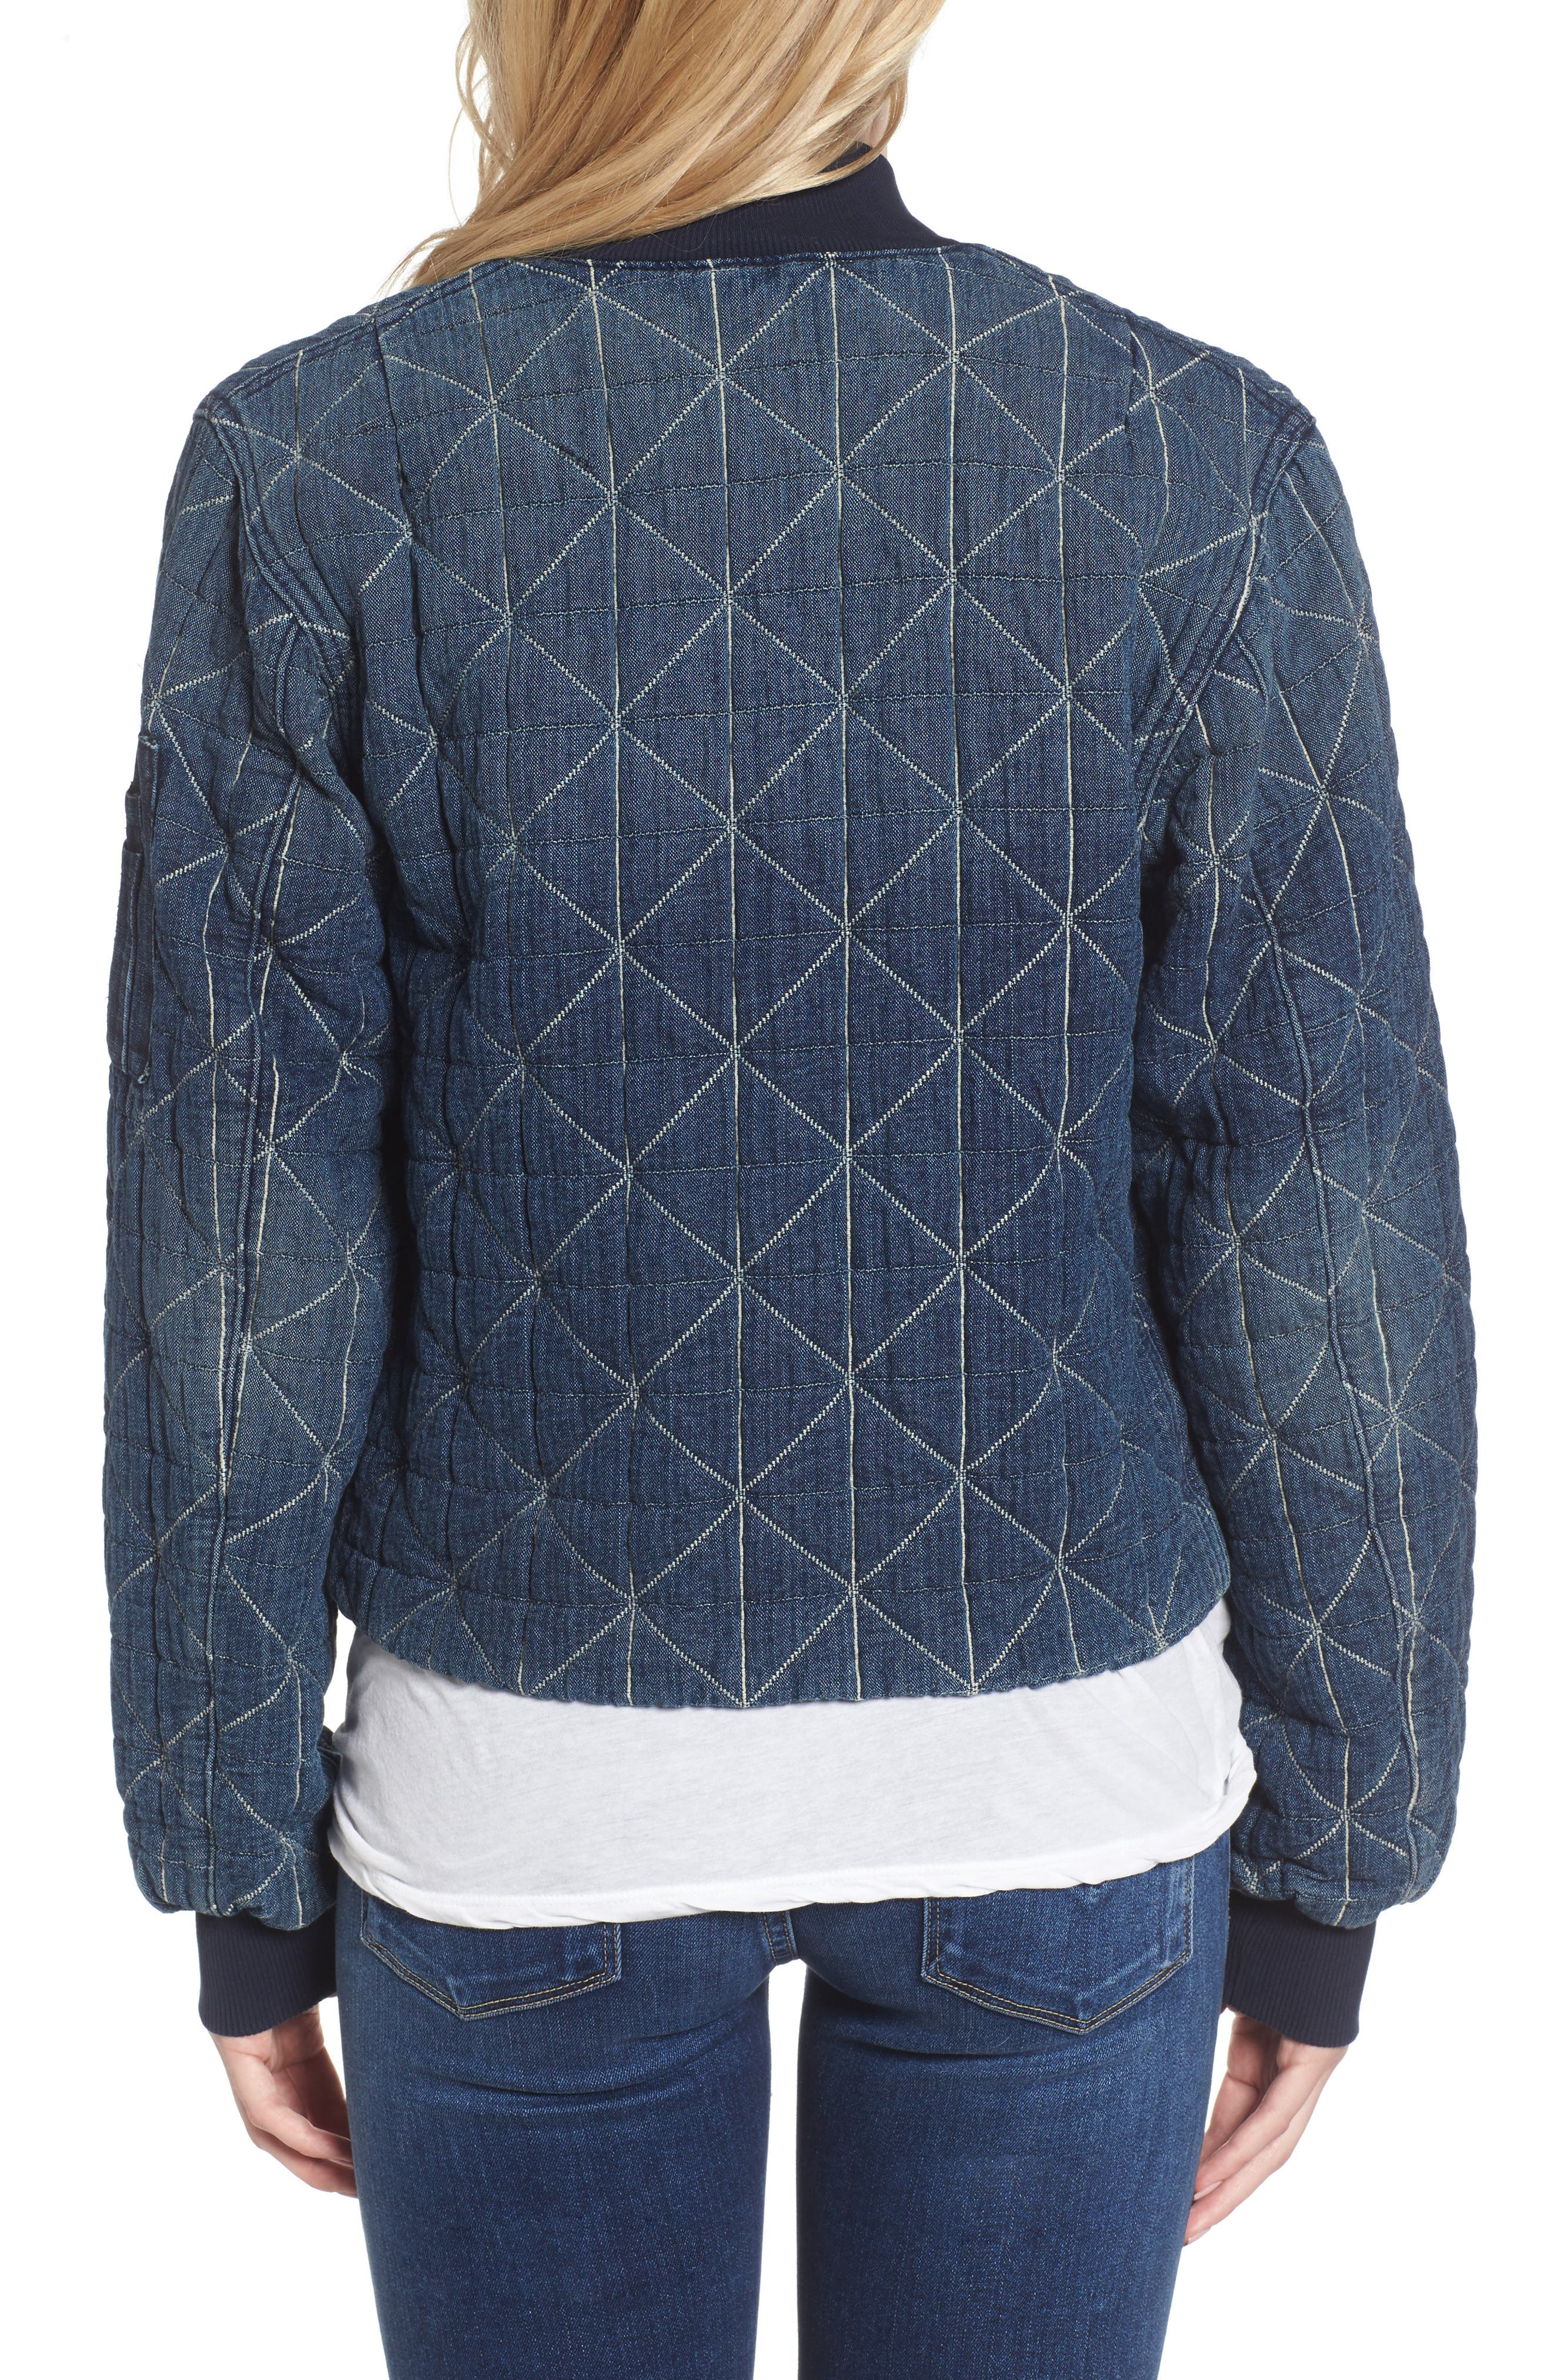 Gene Quilted Bomber Jacket,                             Alternate thumbnail 2, color,                             420